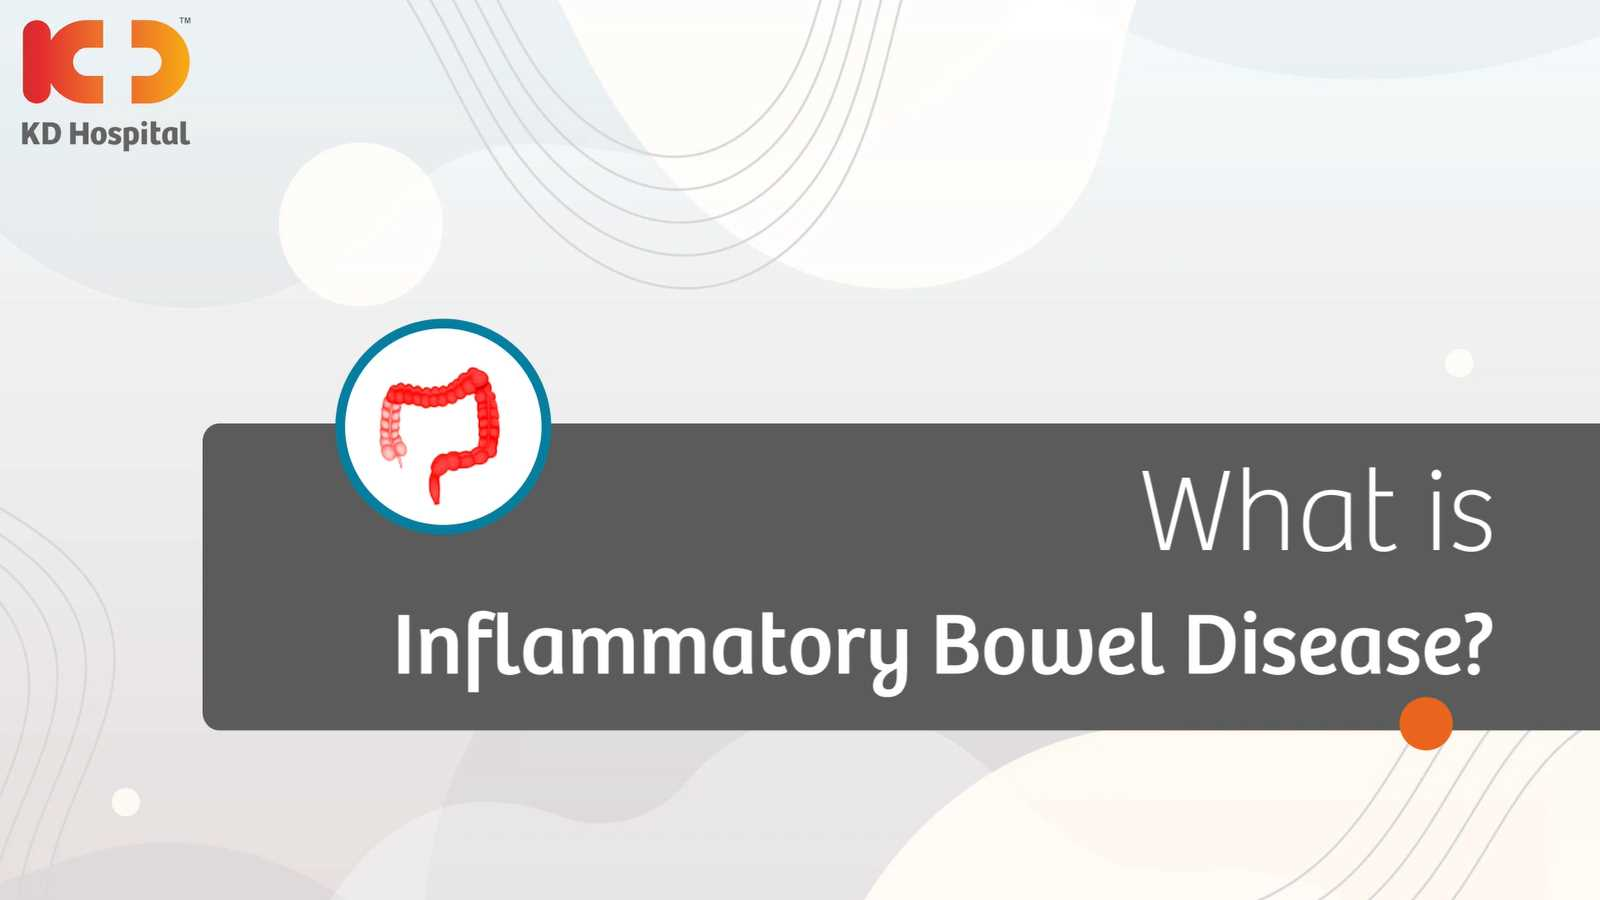 Inflammatory Bowel Disease is a group of inflammatory conditions which mainly affect the colon and small intestines. Call +919825993335 to book an appointment Now! Avail concessional Rates Until 15th August'21.  #KDHospital #GastroSciences #GastroEnterology #GastroSurgery #IB #InflammatoryBowelDisease #StomachDiseases #Inflammation #Diagnosis #Therapeutics #Awareness #wellness #goodhealth #wellnessthatworks #Nusring #NABHHospital #QualityCare #hospital #explore #healthcare #physicians #surgeon #Ahmedabad #Gujarat #India